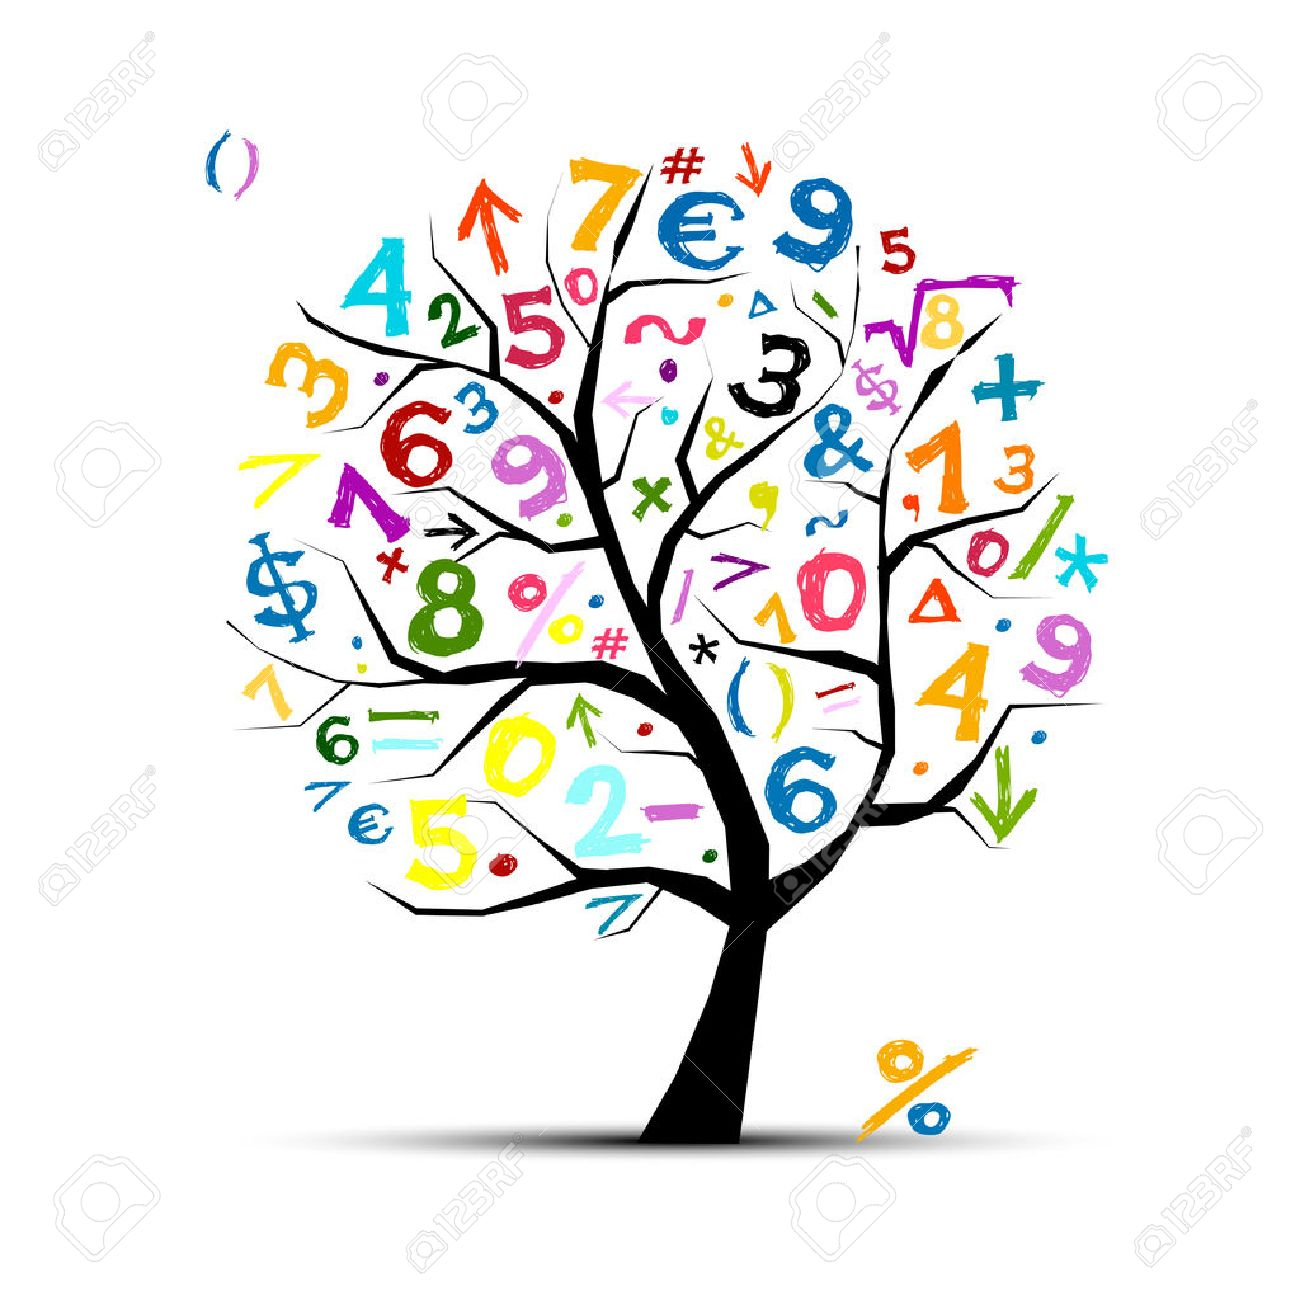 132421 mathematics stock illustrations cliparts and royalty free art tree with math symbols for your design biocorpaavc